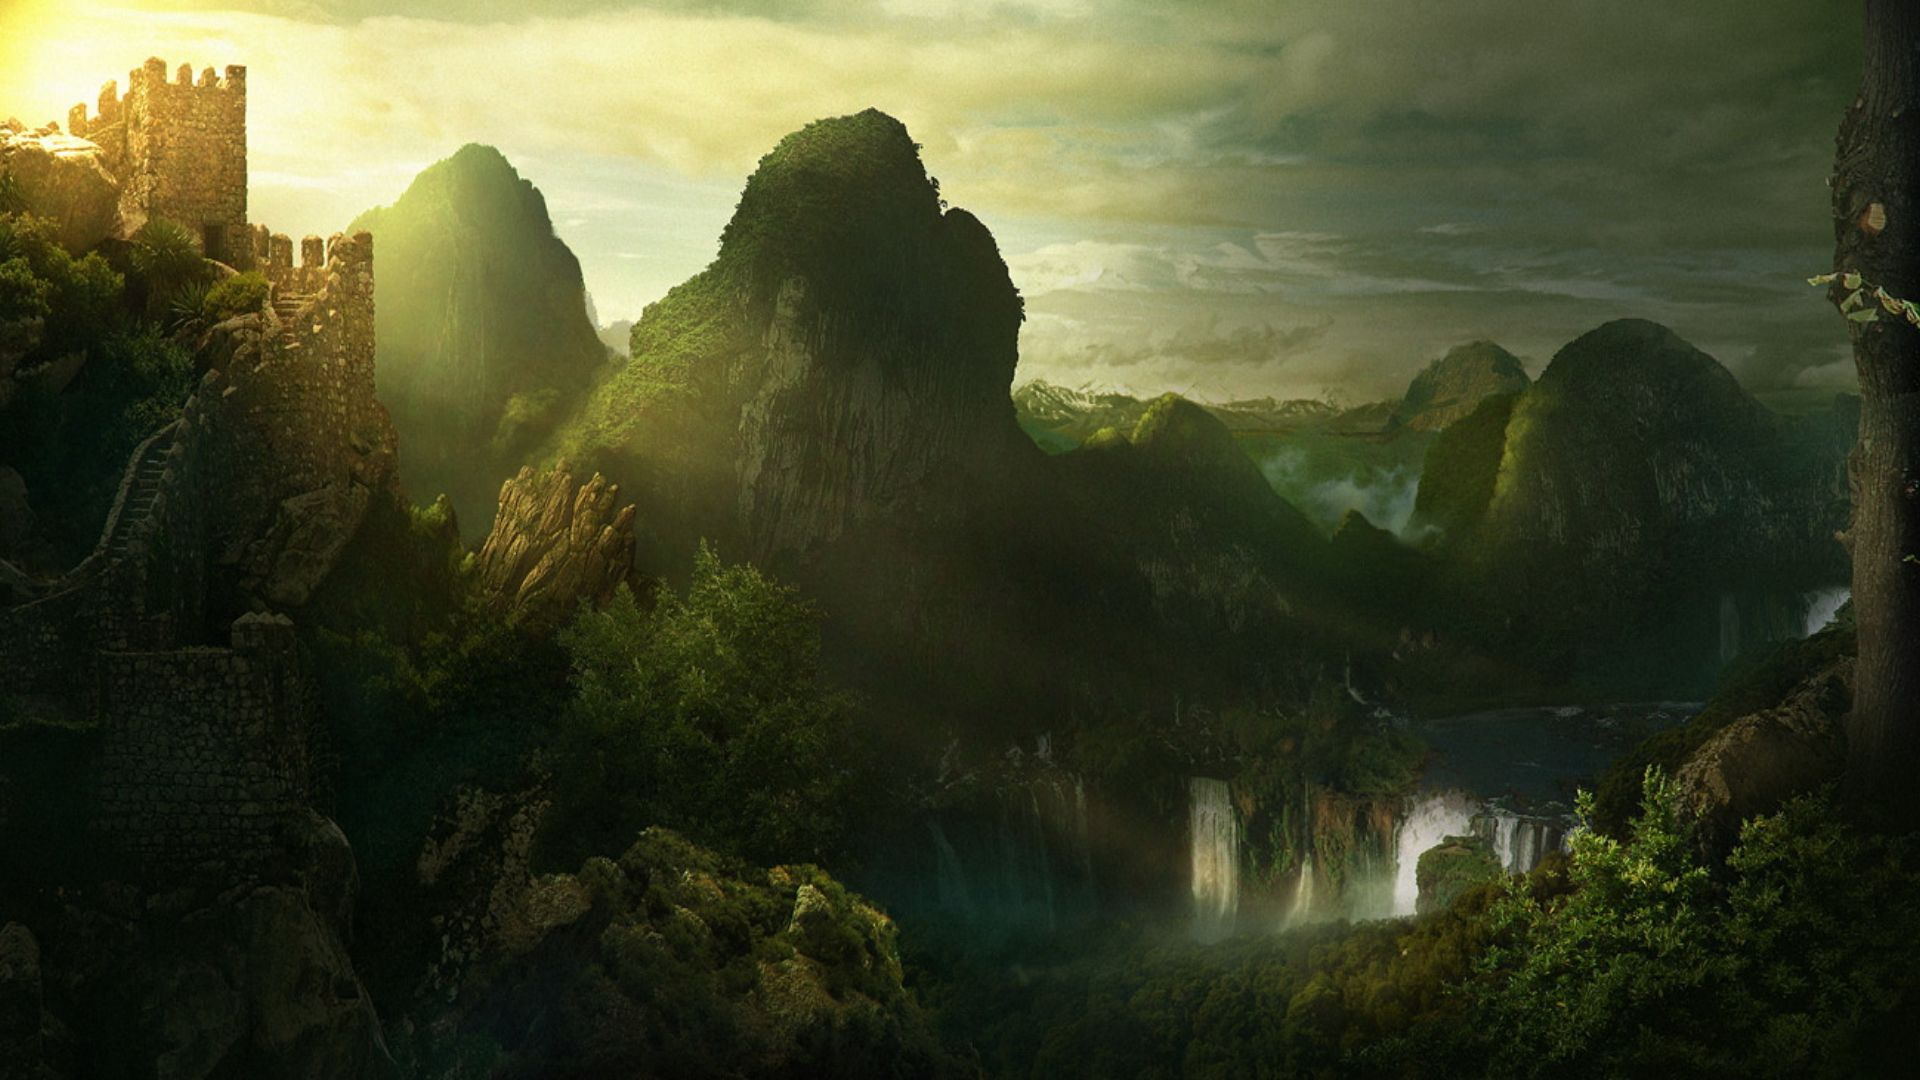 Stunning Hd Fantasy Wallpapers: Background Images - Wallpaper